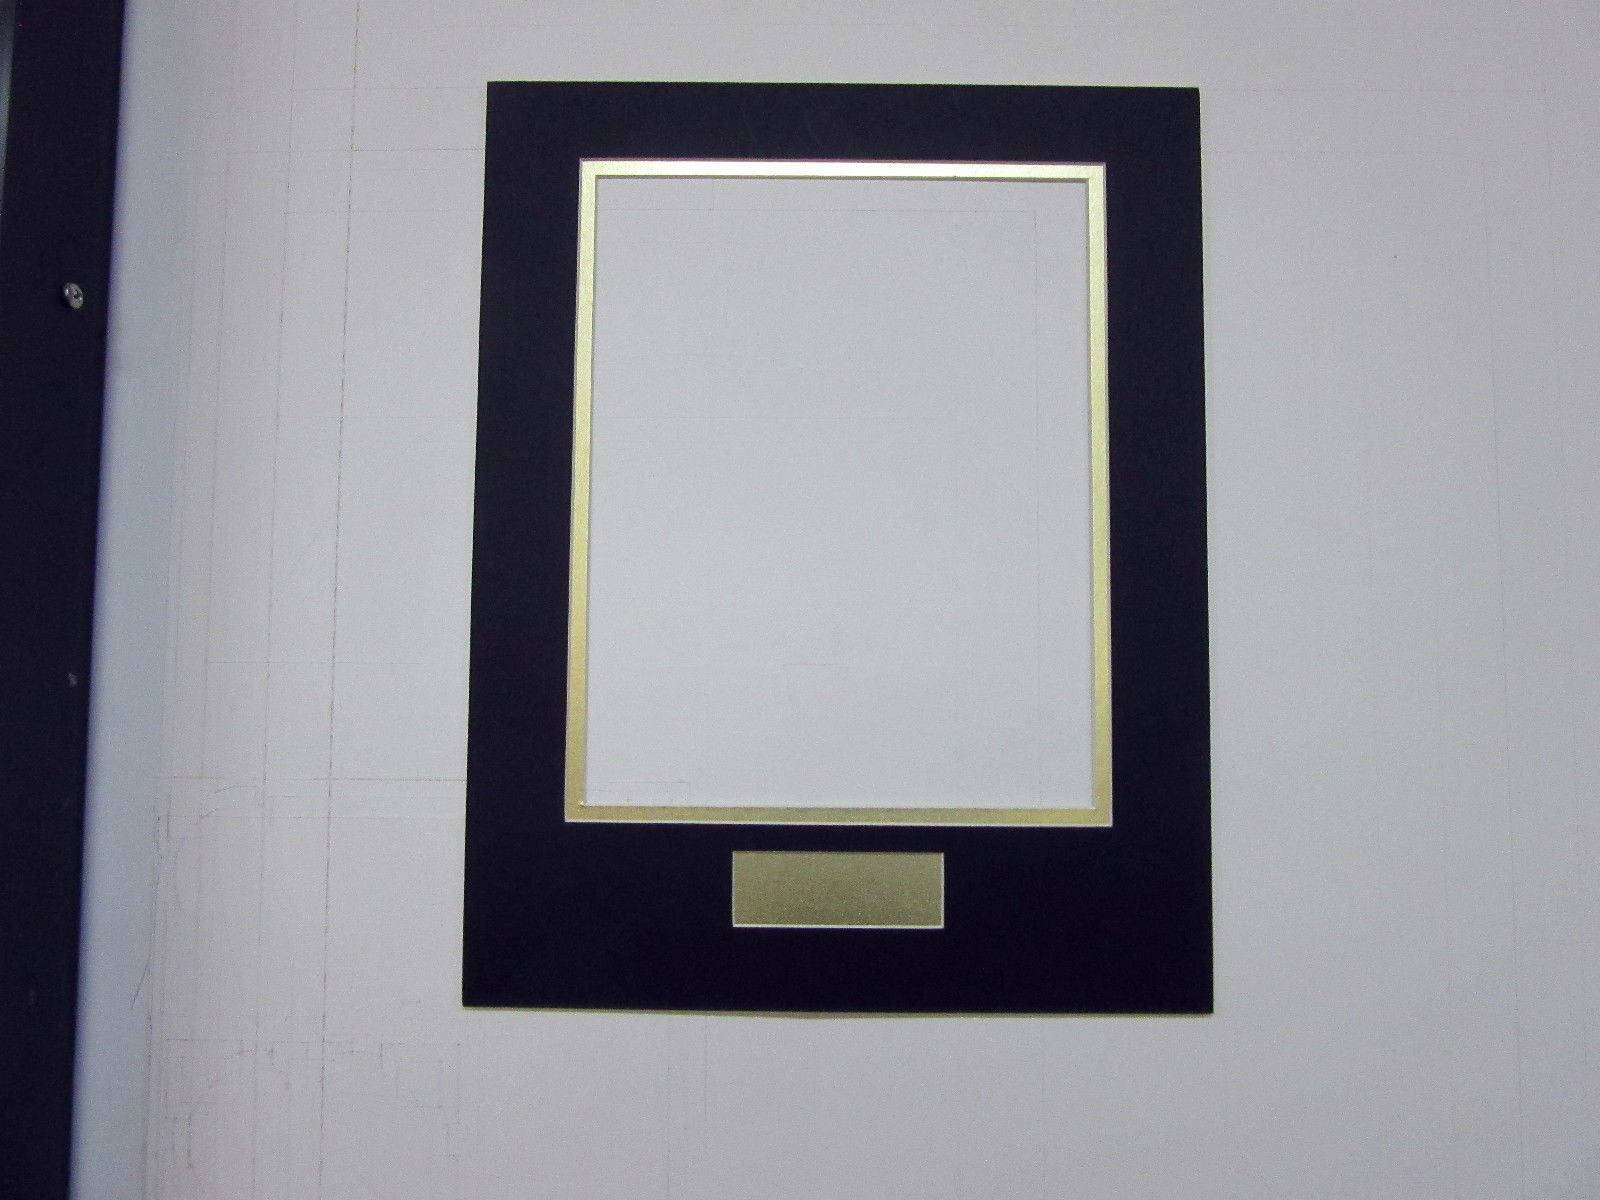 Picture Frame Double Mat 11x14 For 8x10 Photo Black With